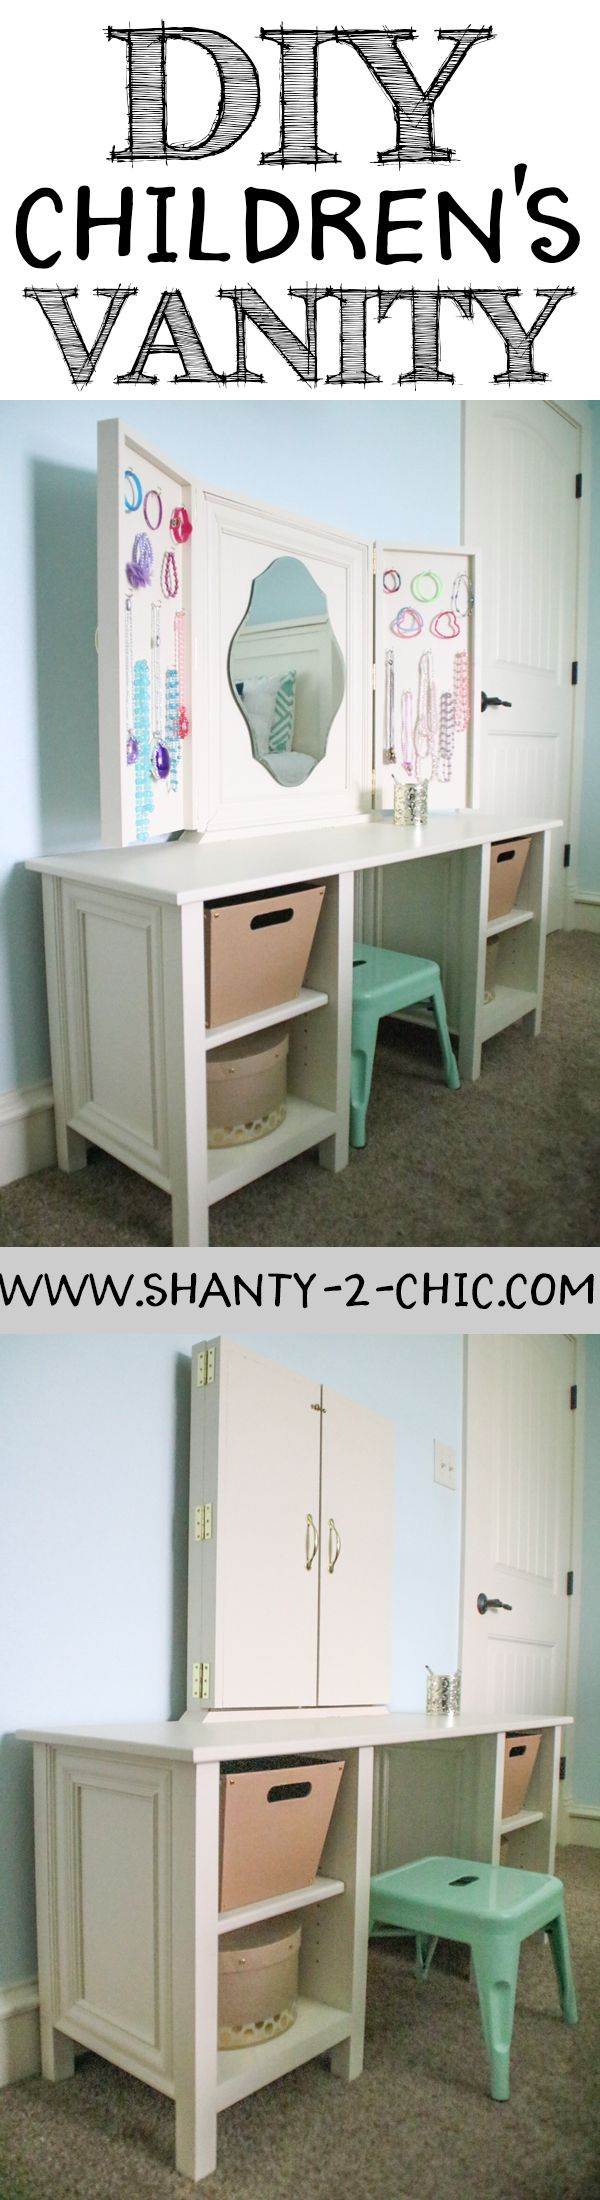 Build a quality, custom children's vanity for less than you can find one in stores! Use the free plans from www.shanty-2-chic.com to build a high end children's vanity!